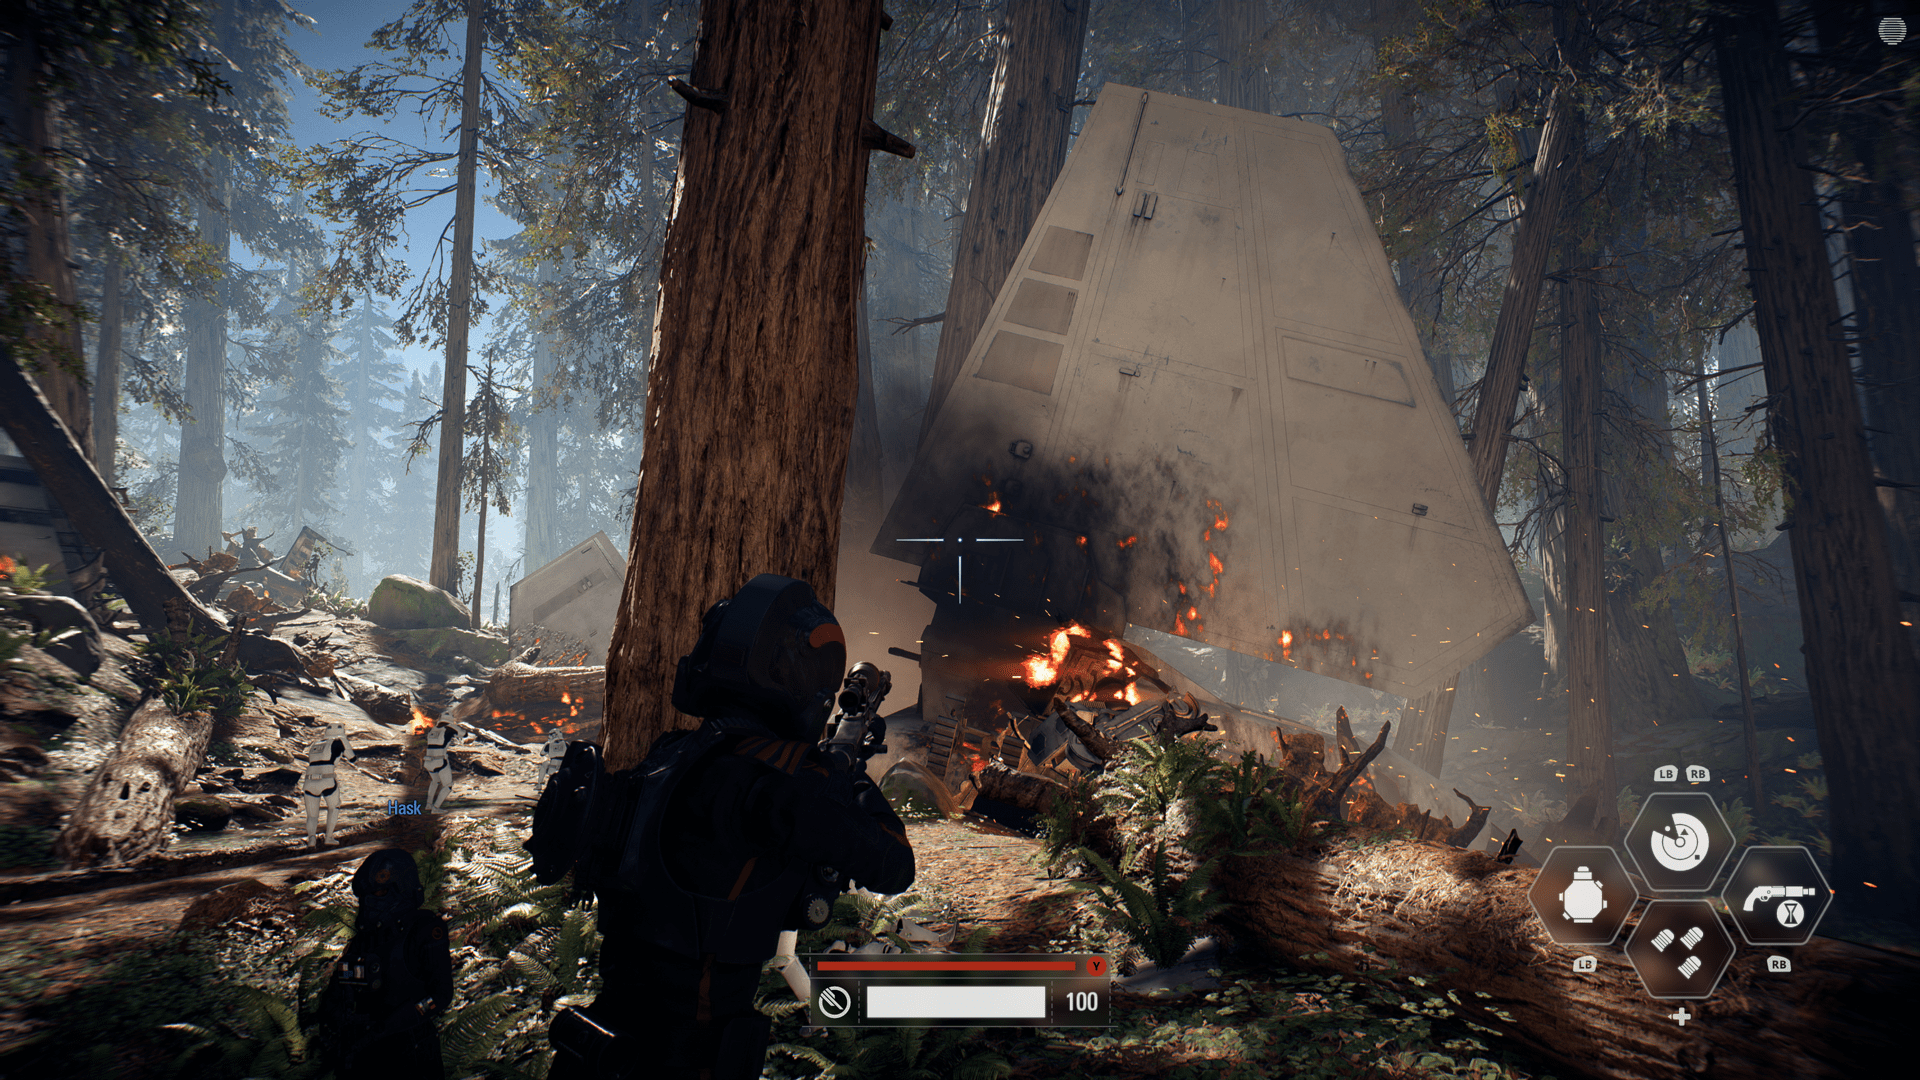 Review - Star Wars Battlefront 2 (Xbox One)